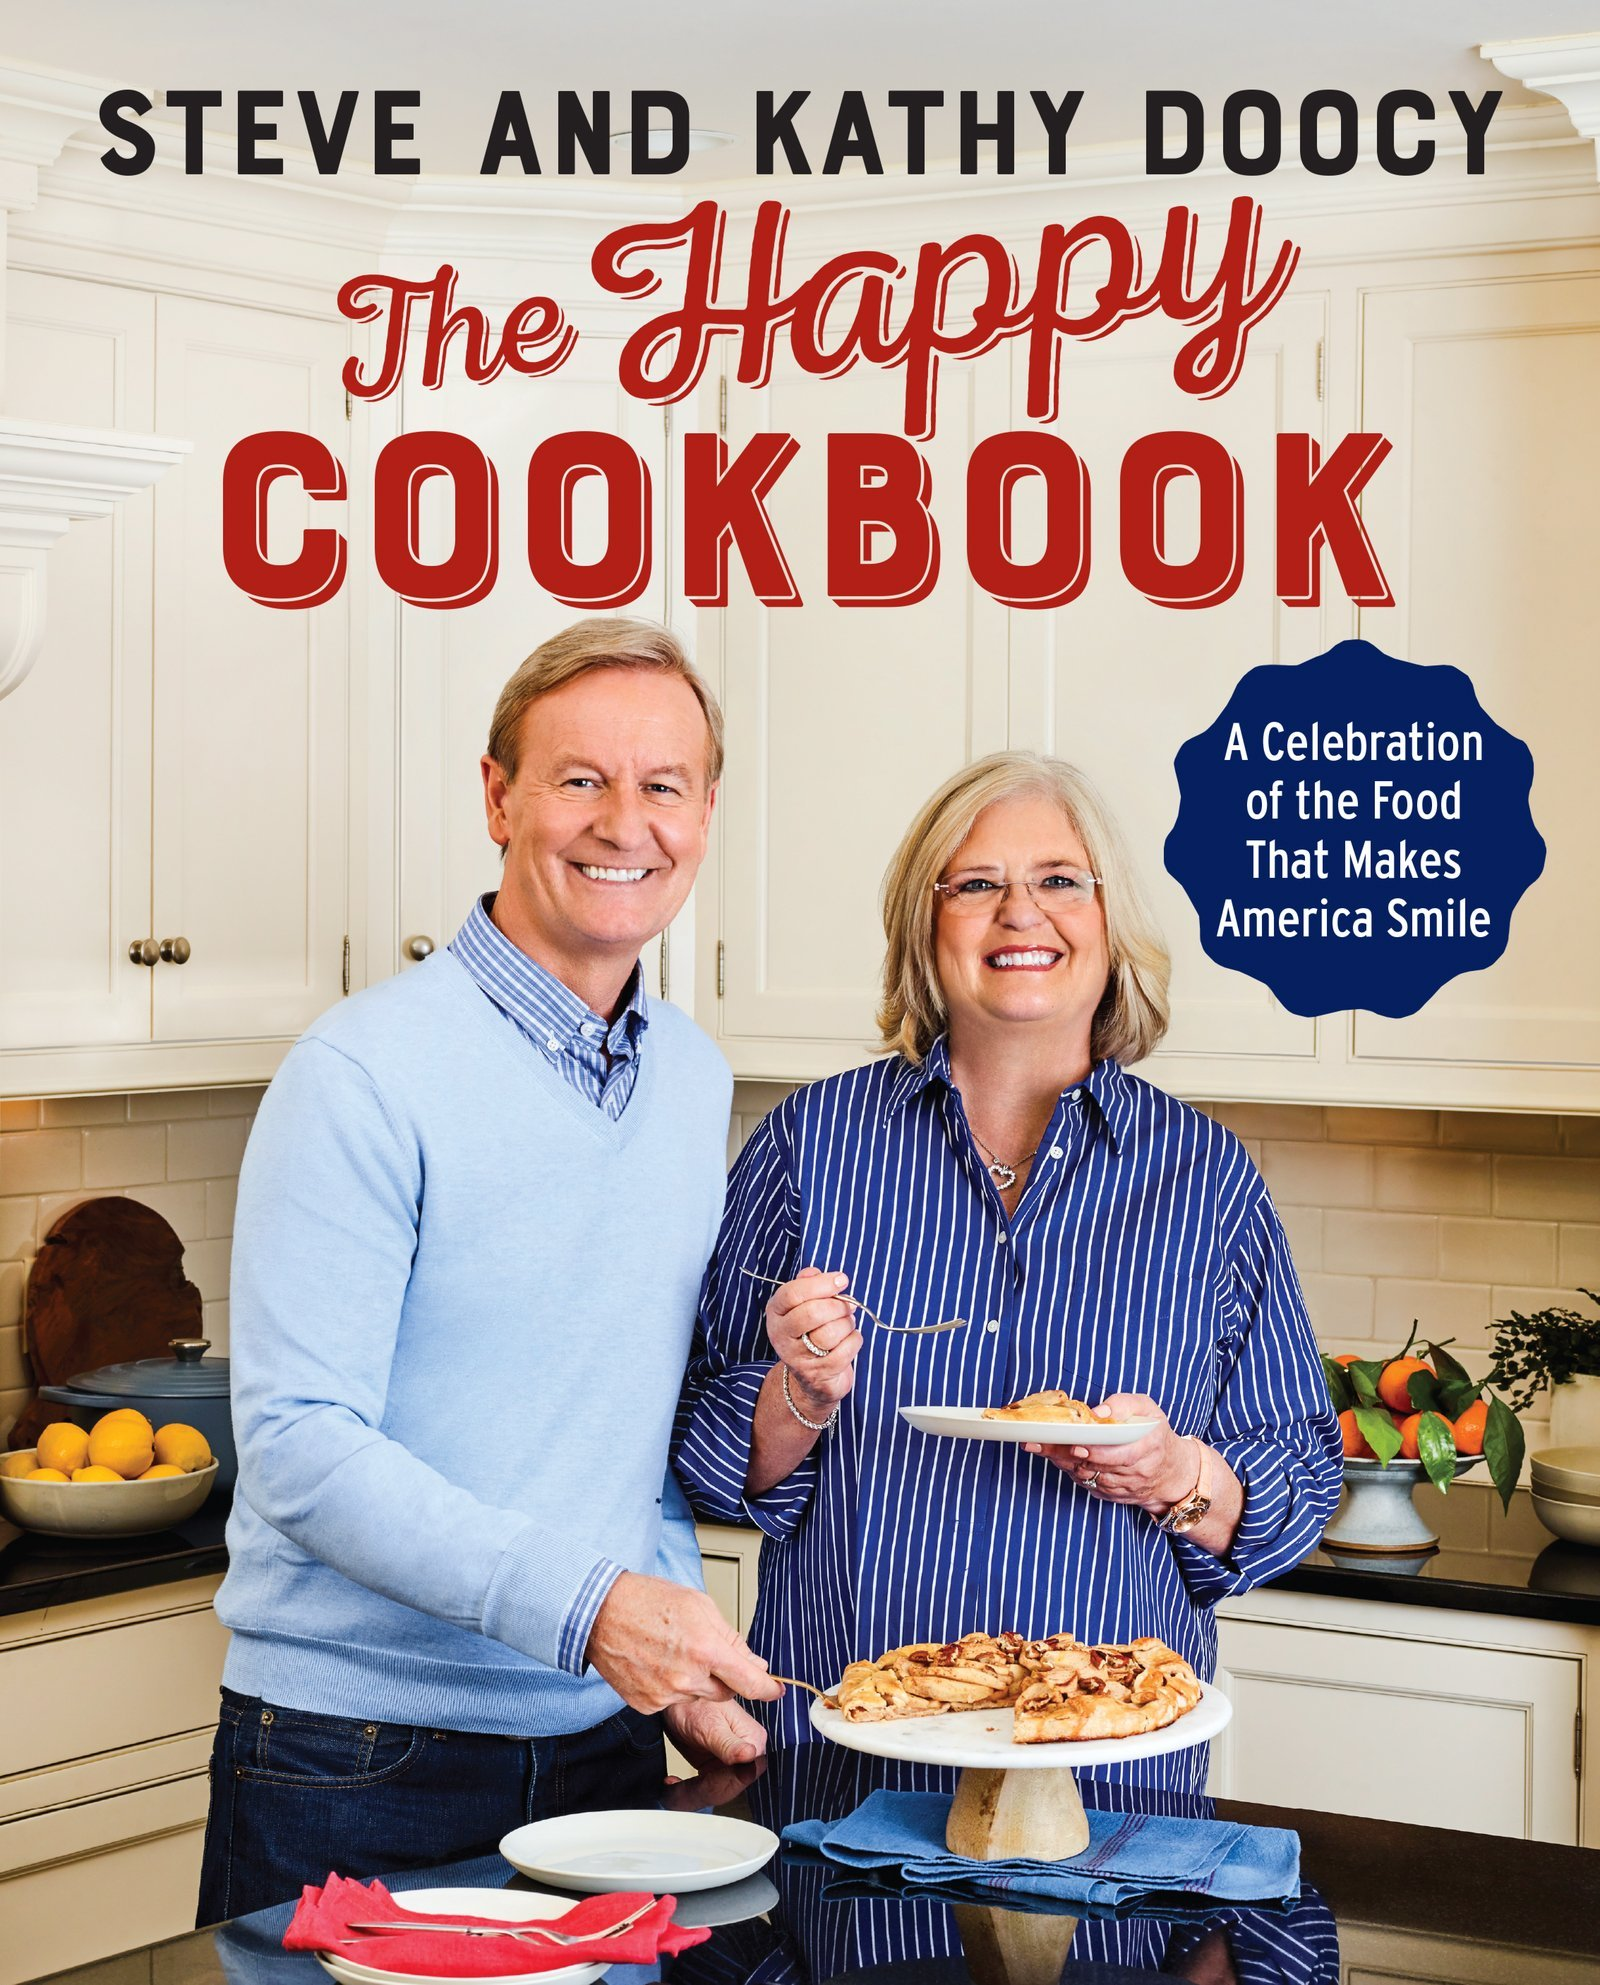 Happy Cookbook 9780062838940/